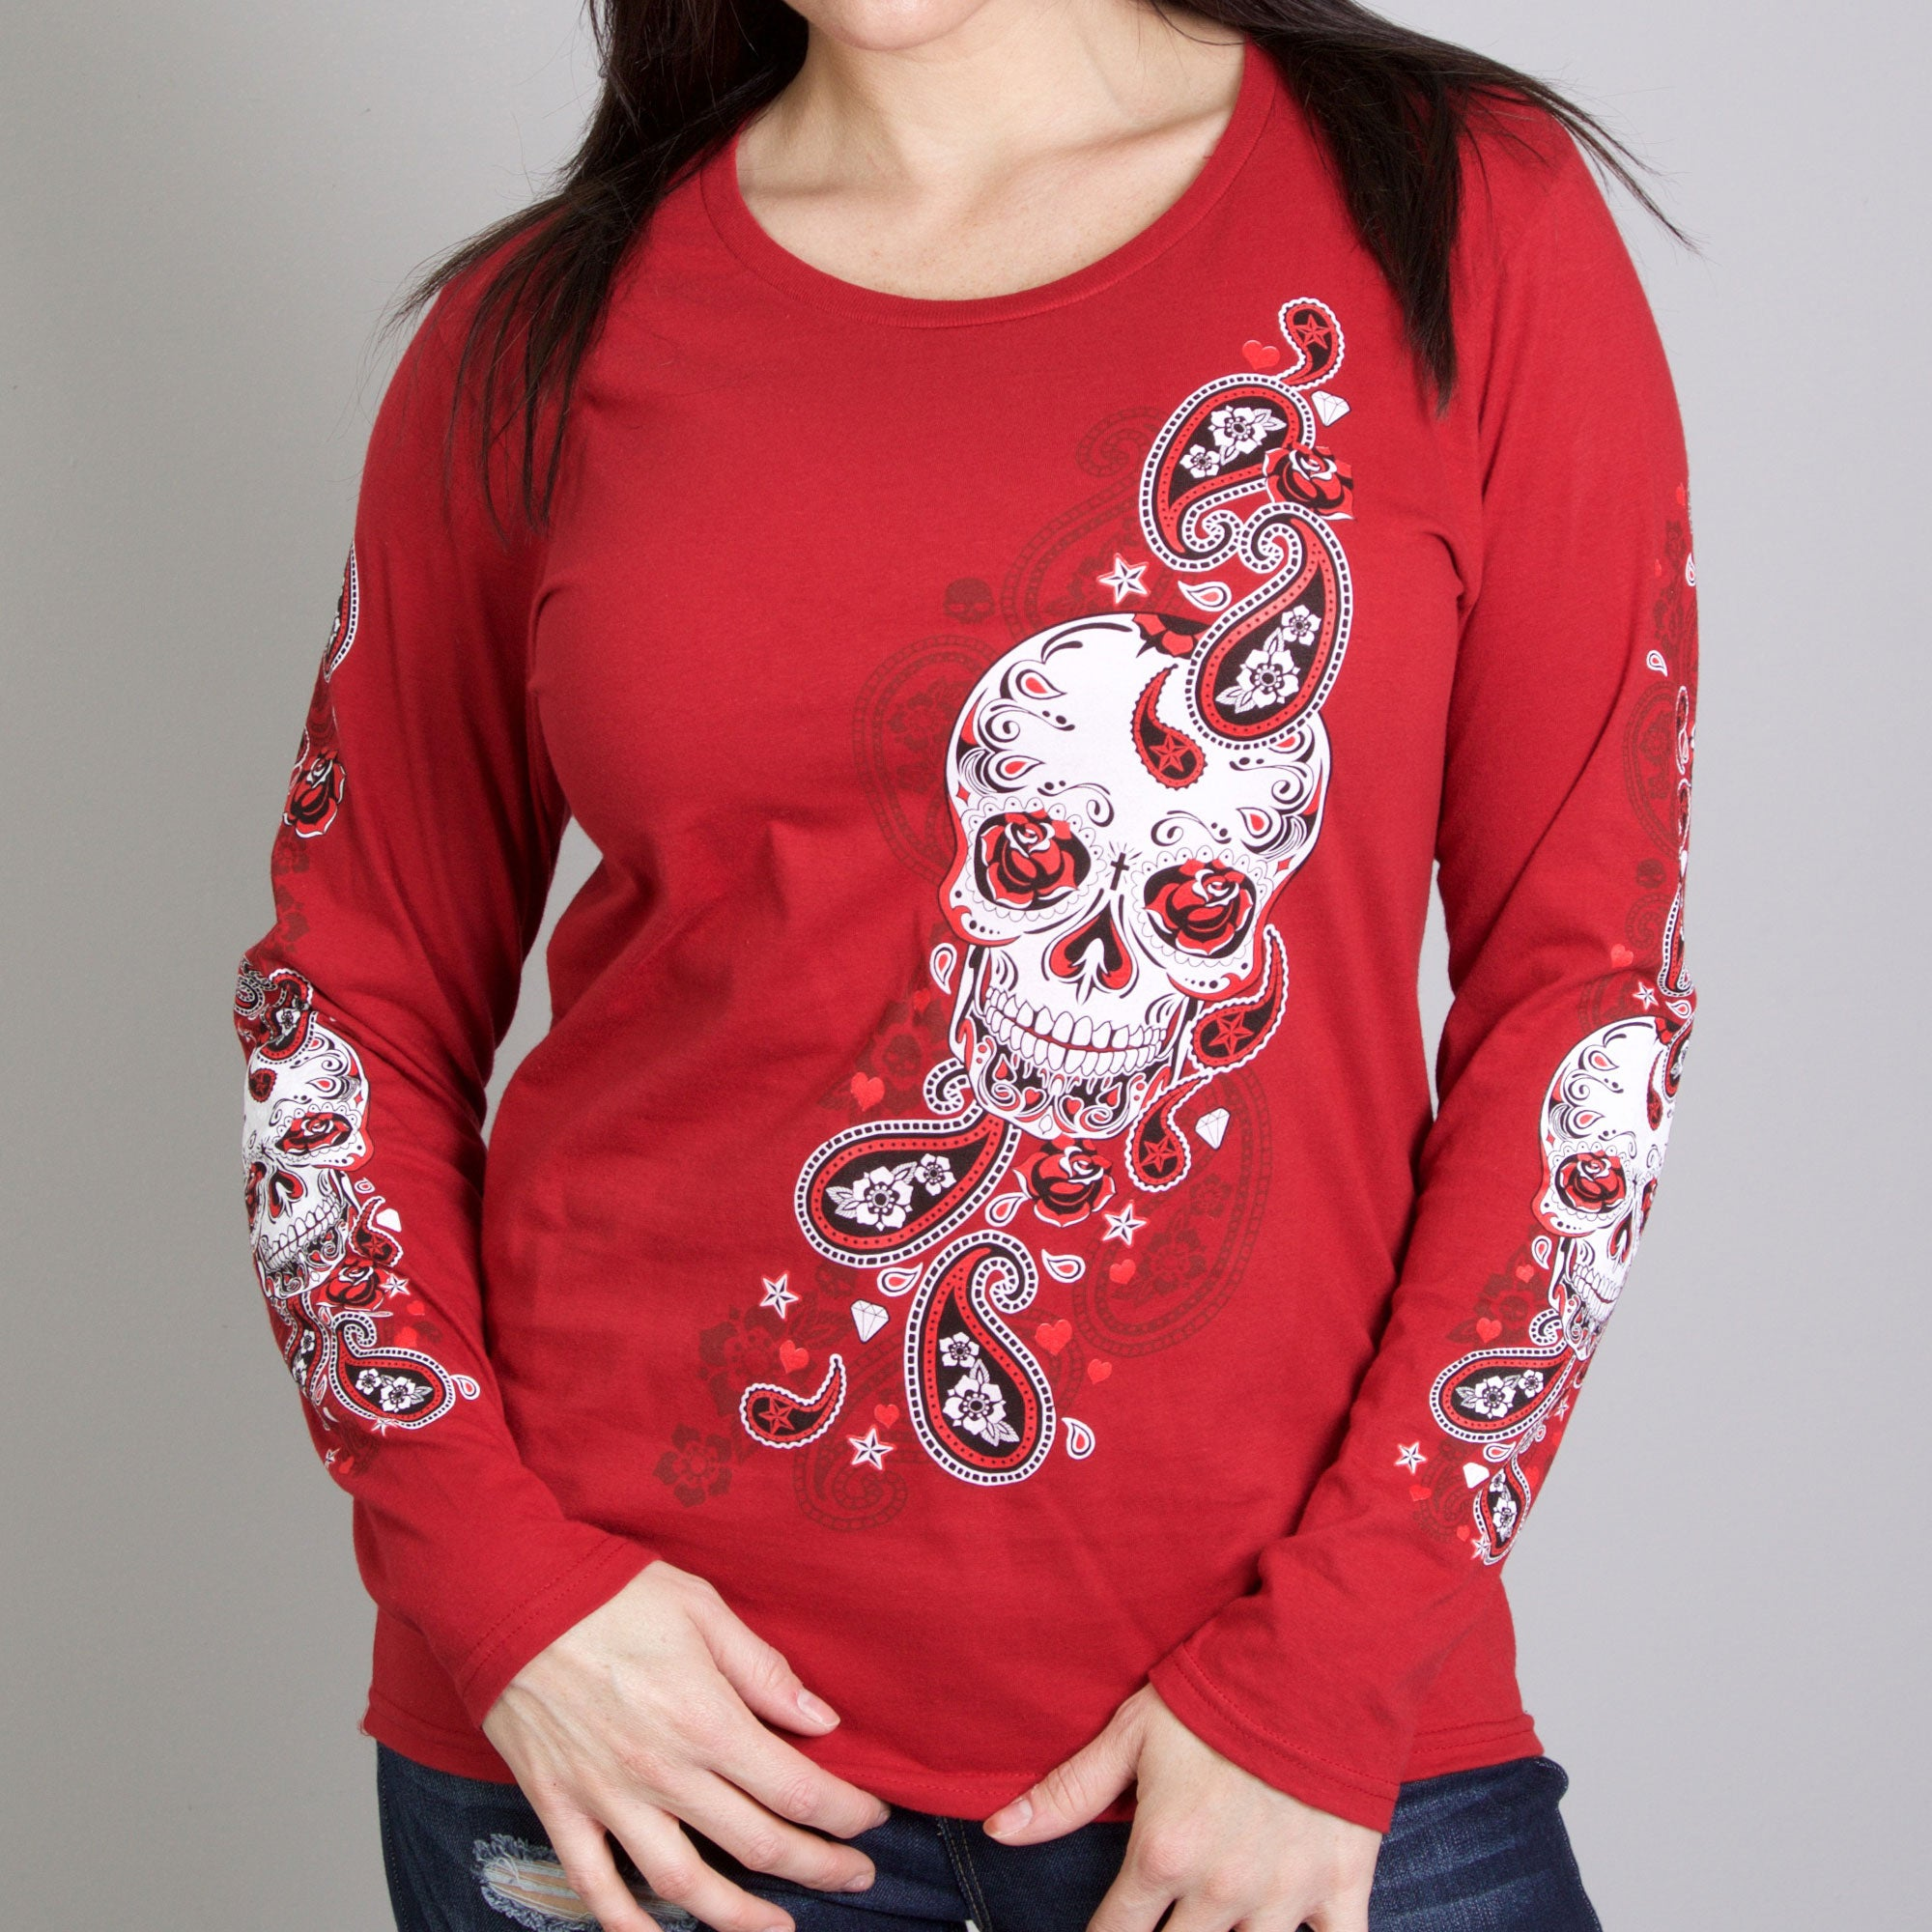 Hot Leathers Sugar Paisley Ladies Long Sleeve Shirt